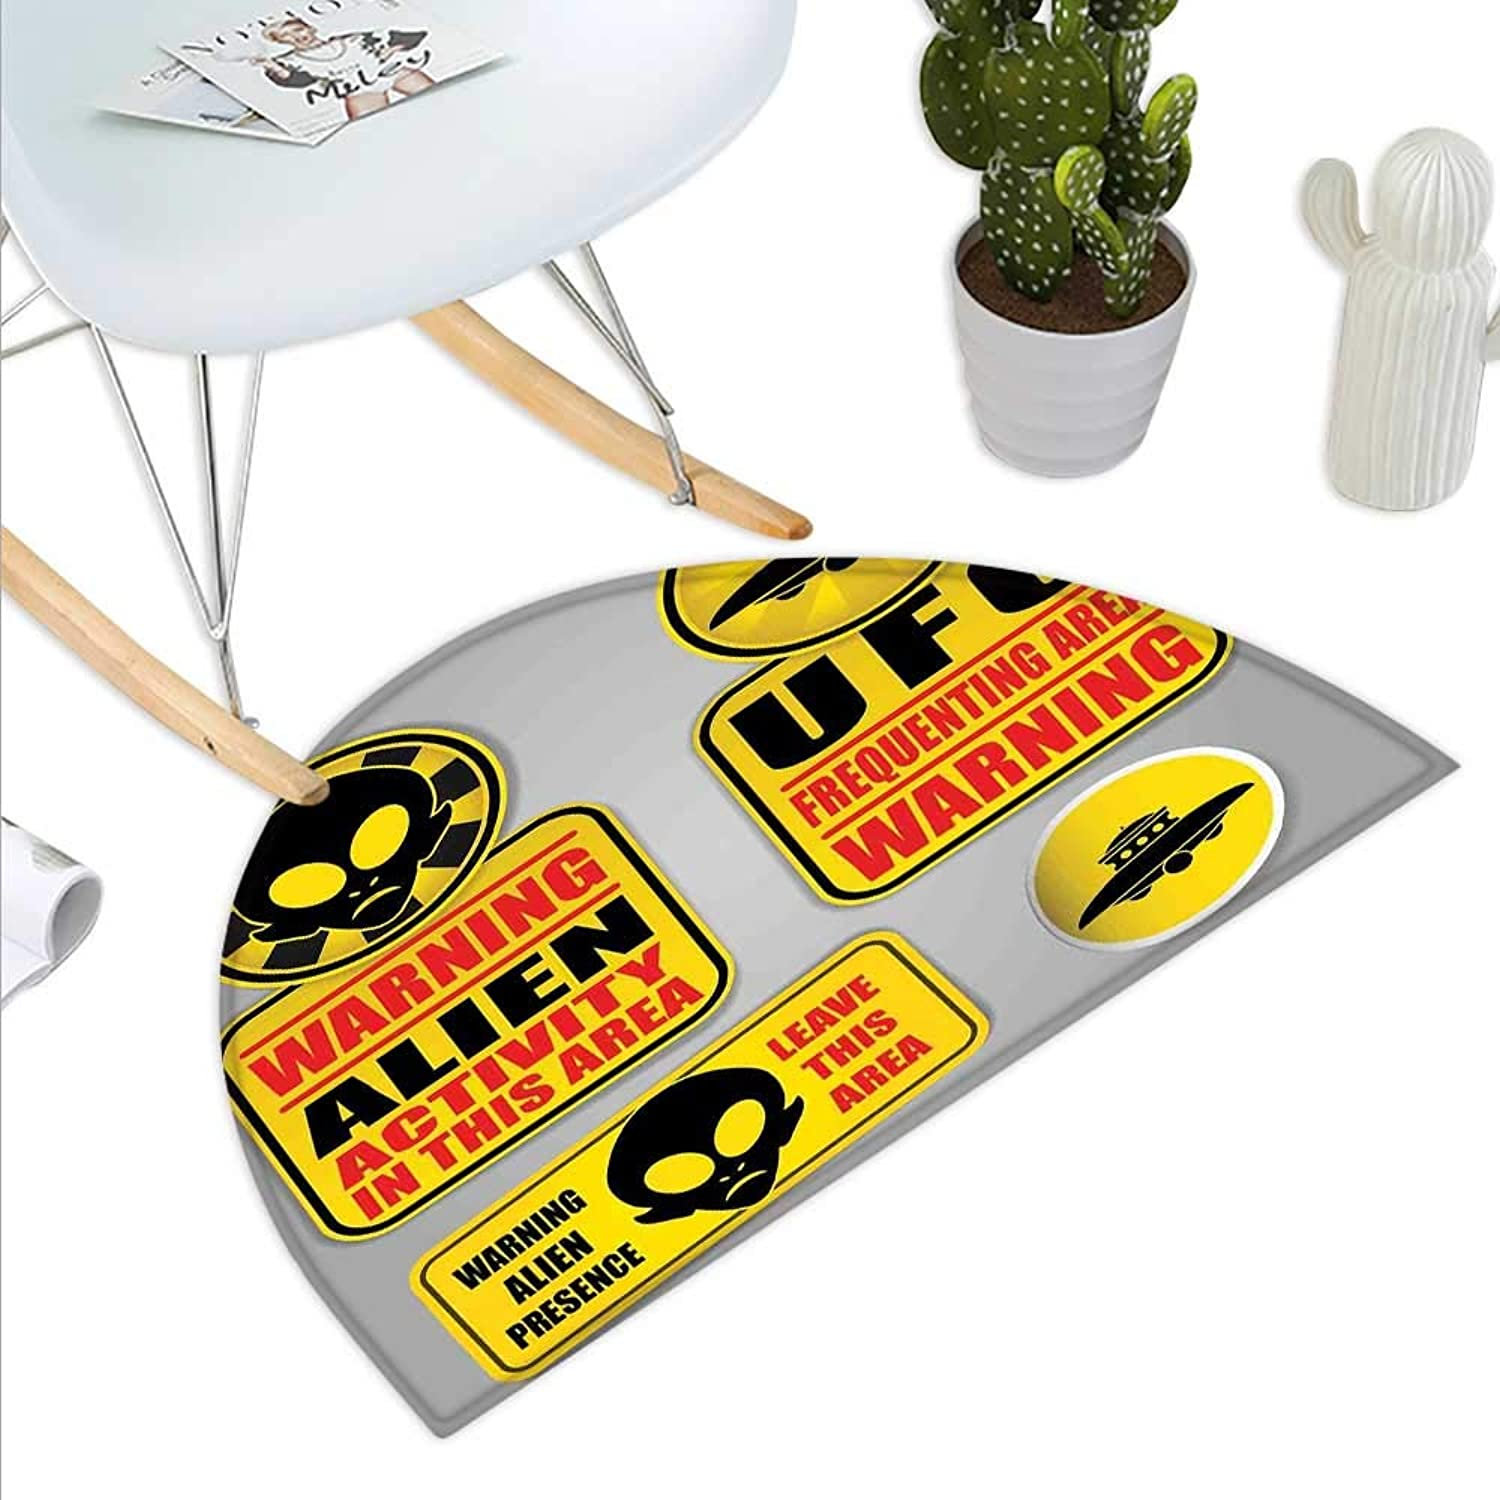 Outer Space Semicircle Doormat Warning Alien UFO Sign Face of Martian Creature Danger Horror Theme Print Halfmoon doormats H 47.2  xD 70.8  Black Yellow